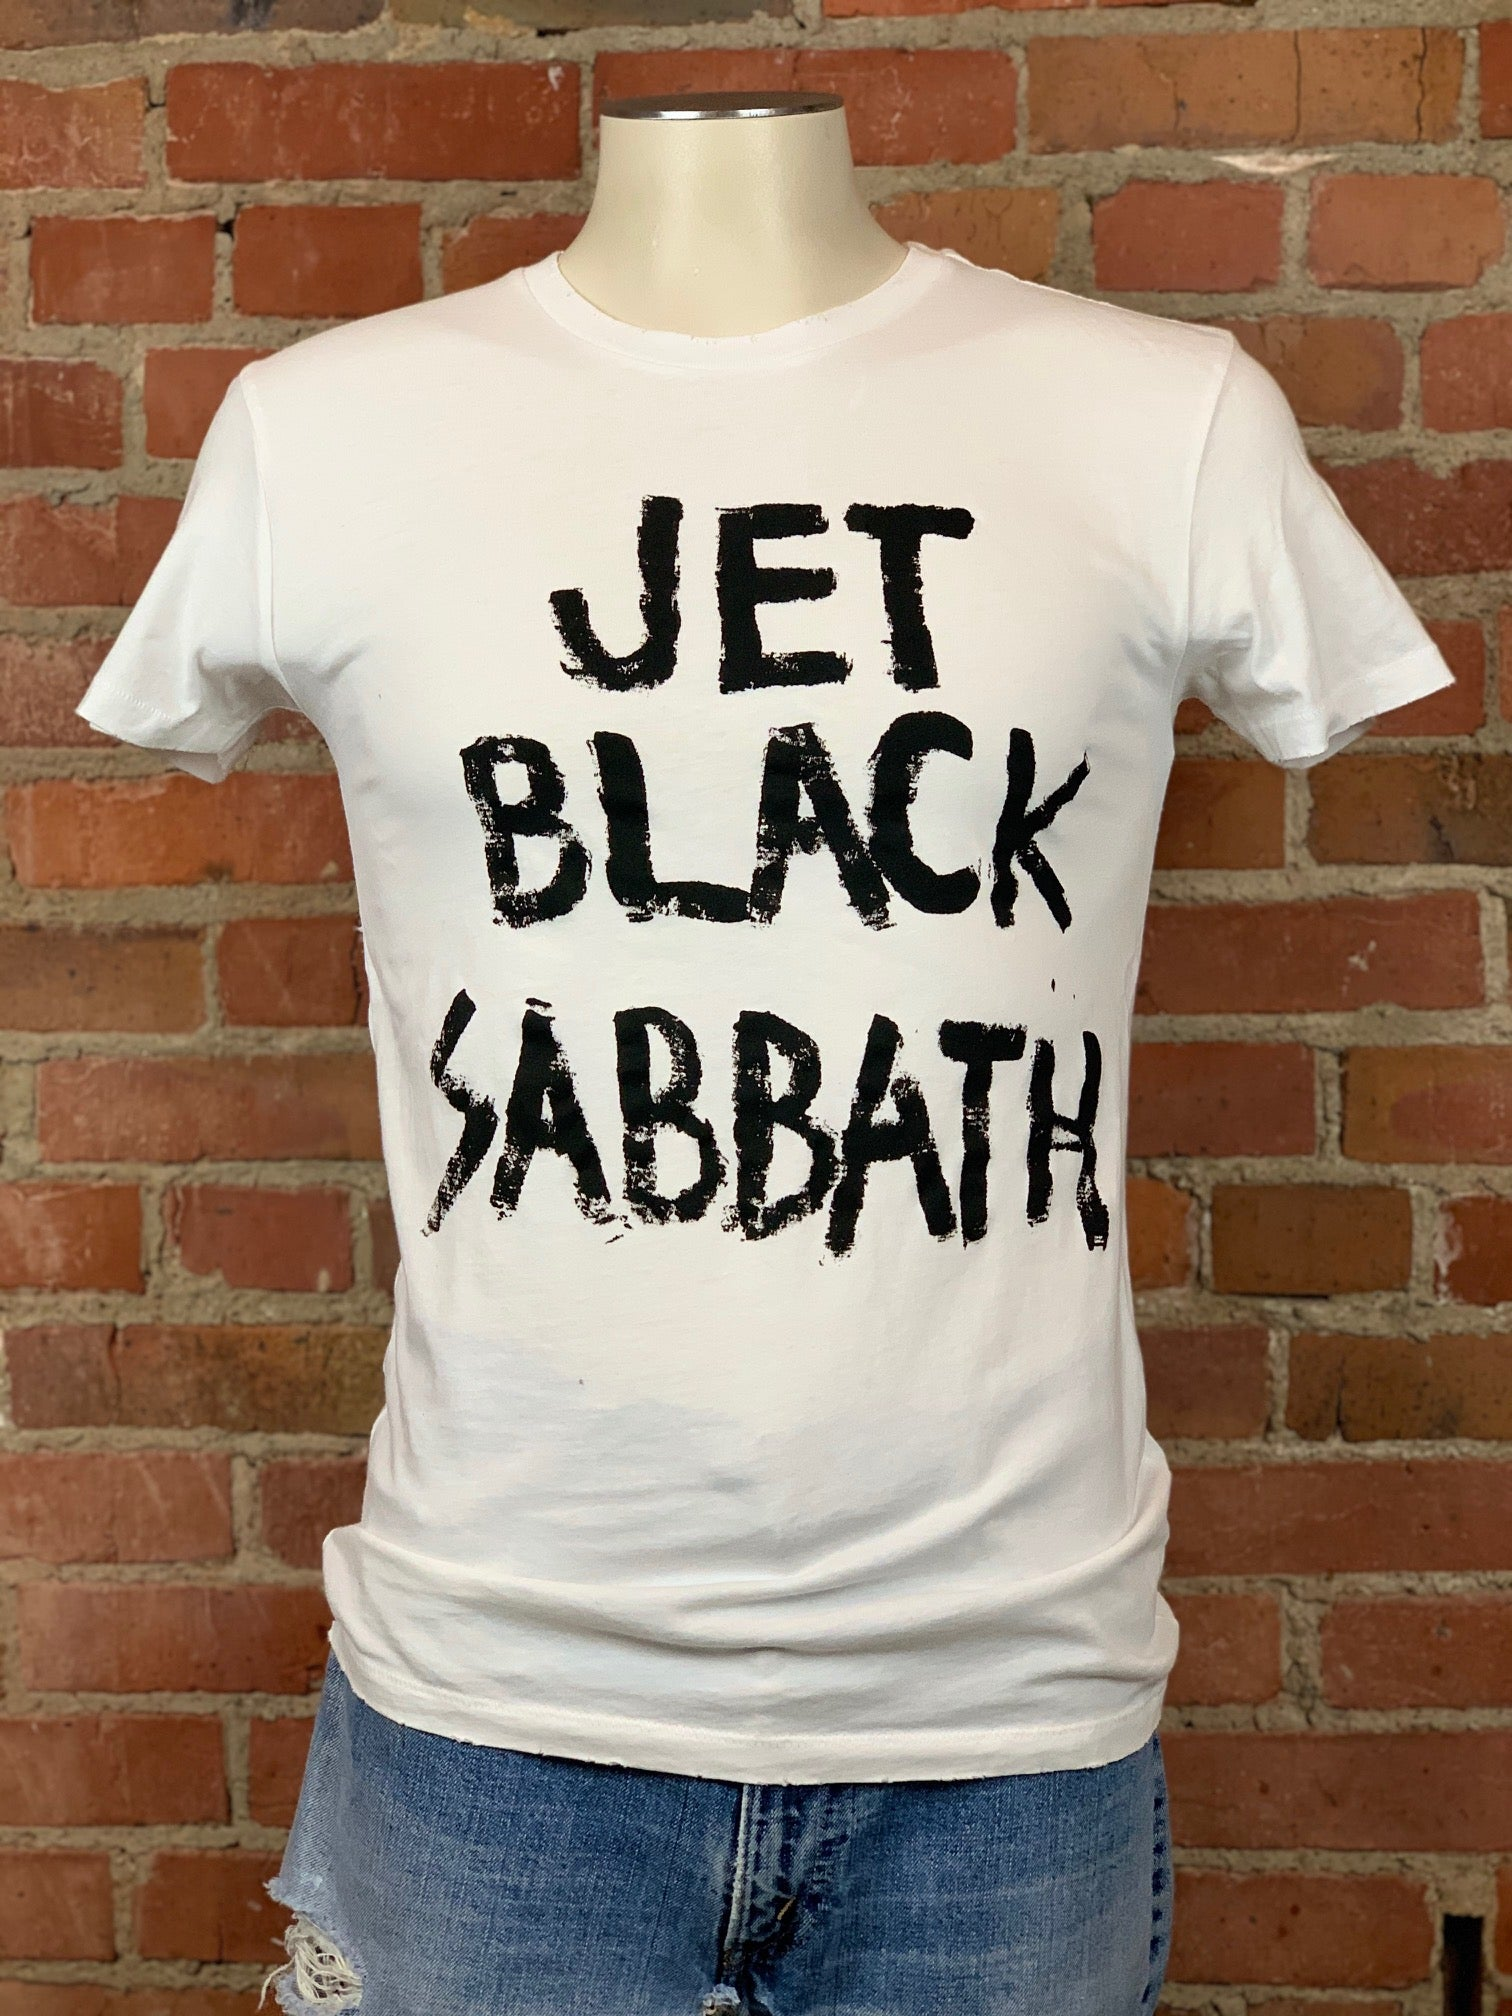 Jet Black Sabbath Unisex T-shirt in White - Wild Ones